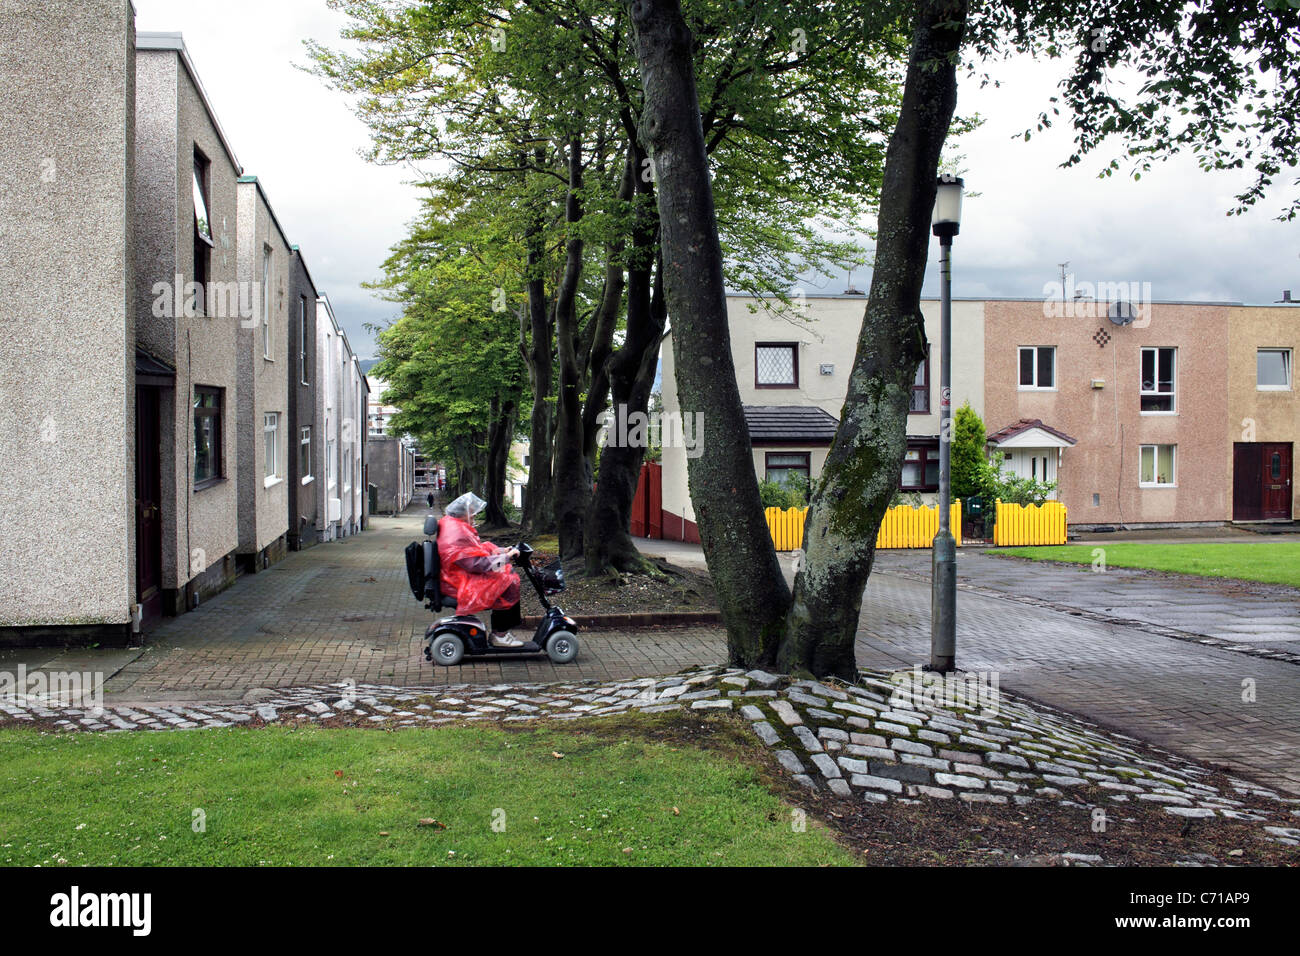 Fleming Road, a pedestrian only route in Cumbernauld new town, Scotland. - Stock Image